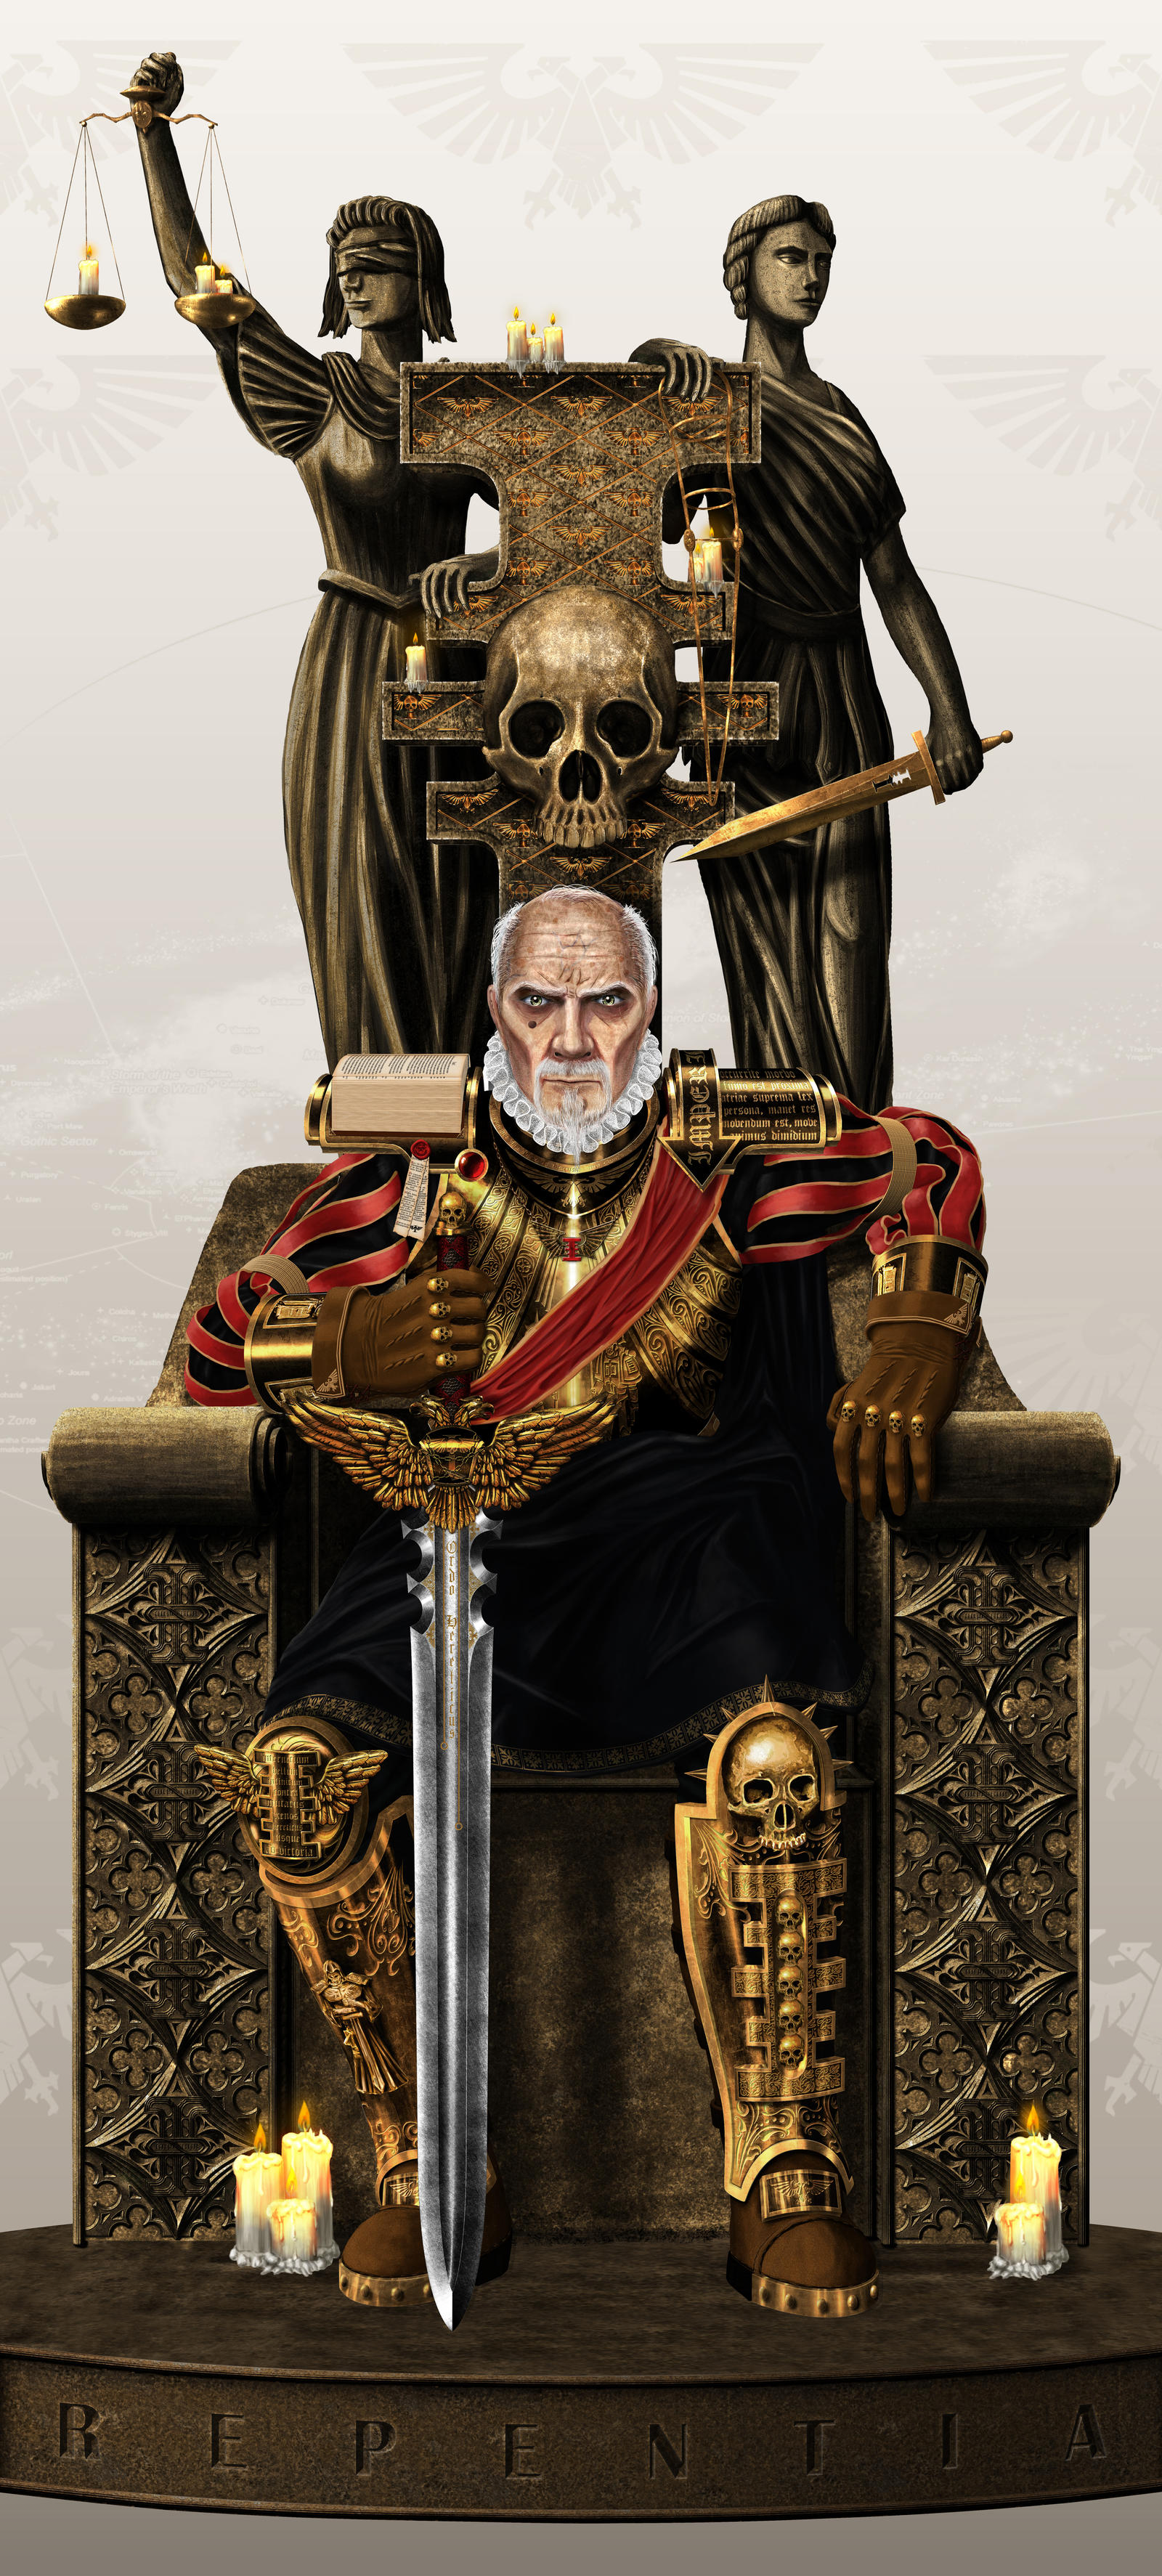 Lord Inquisitor Fyodor Karamazov by forArkan